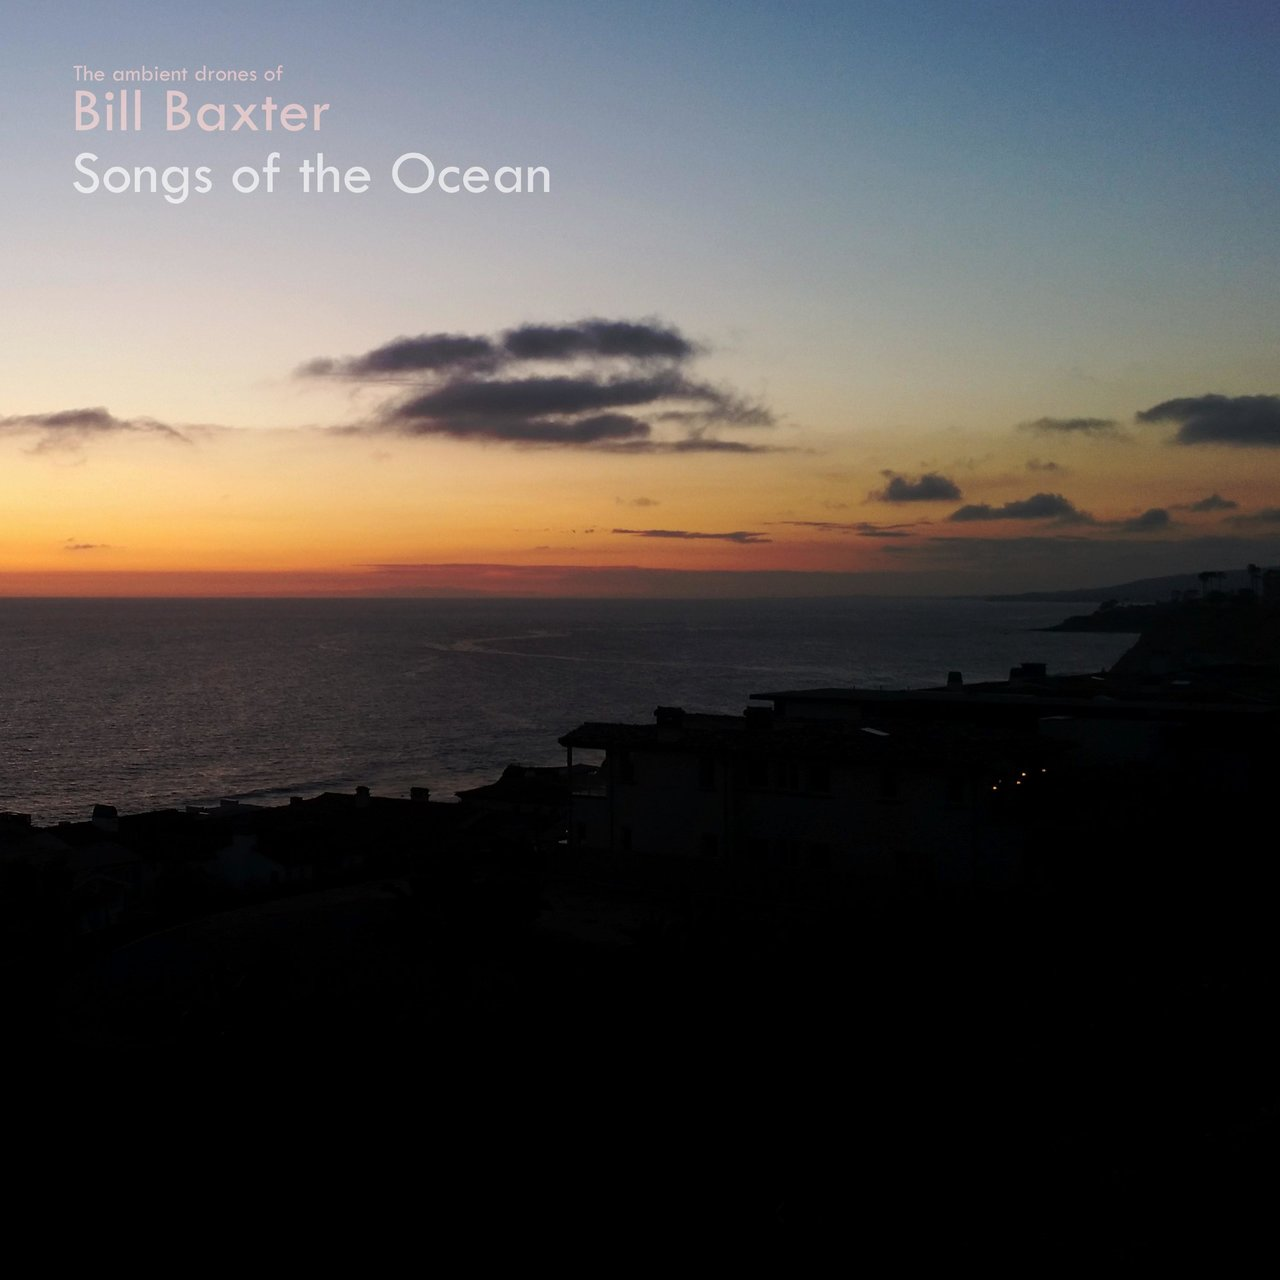 Songs of the Ocean